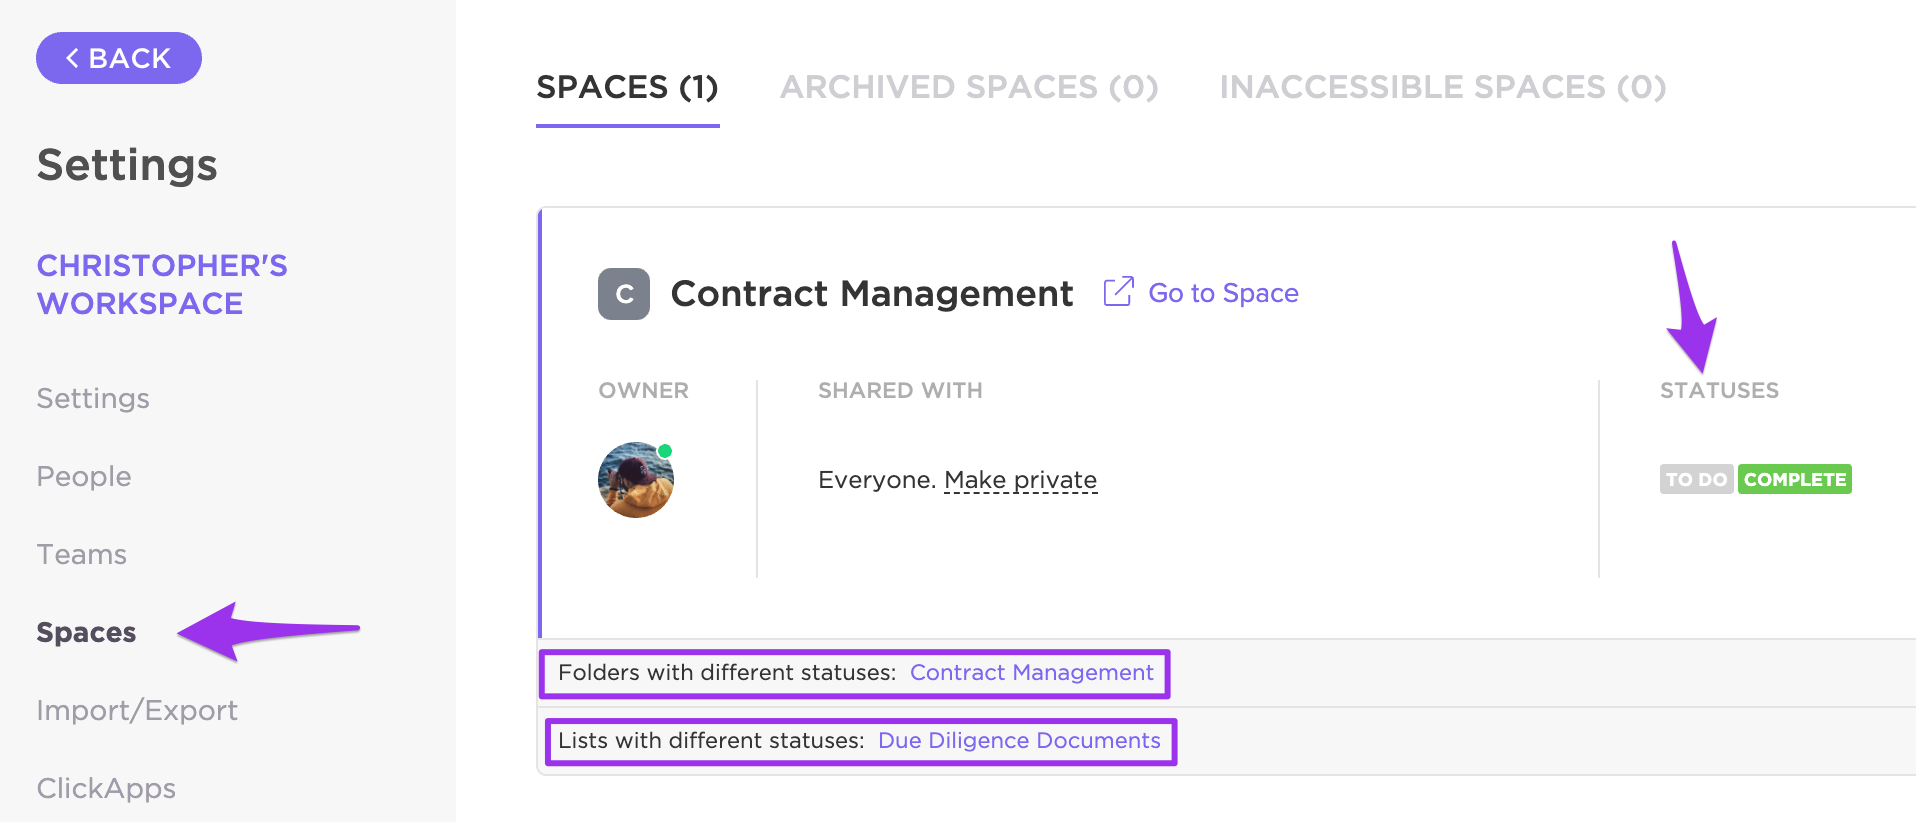 Locating Statuses in Spaces